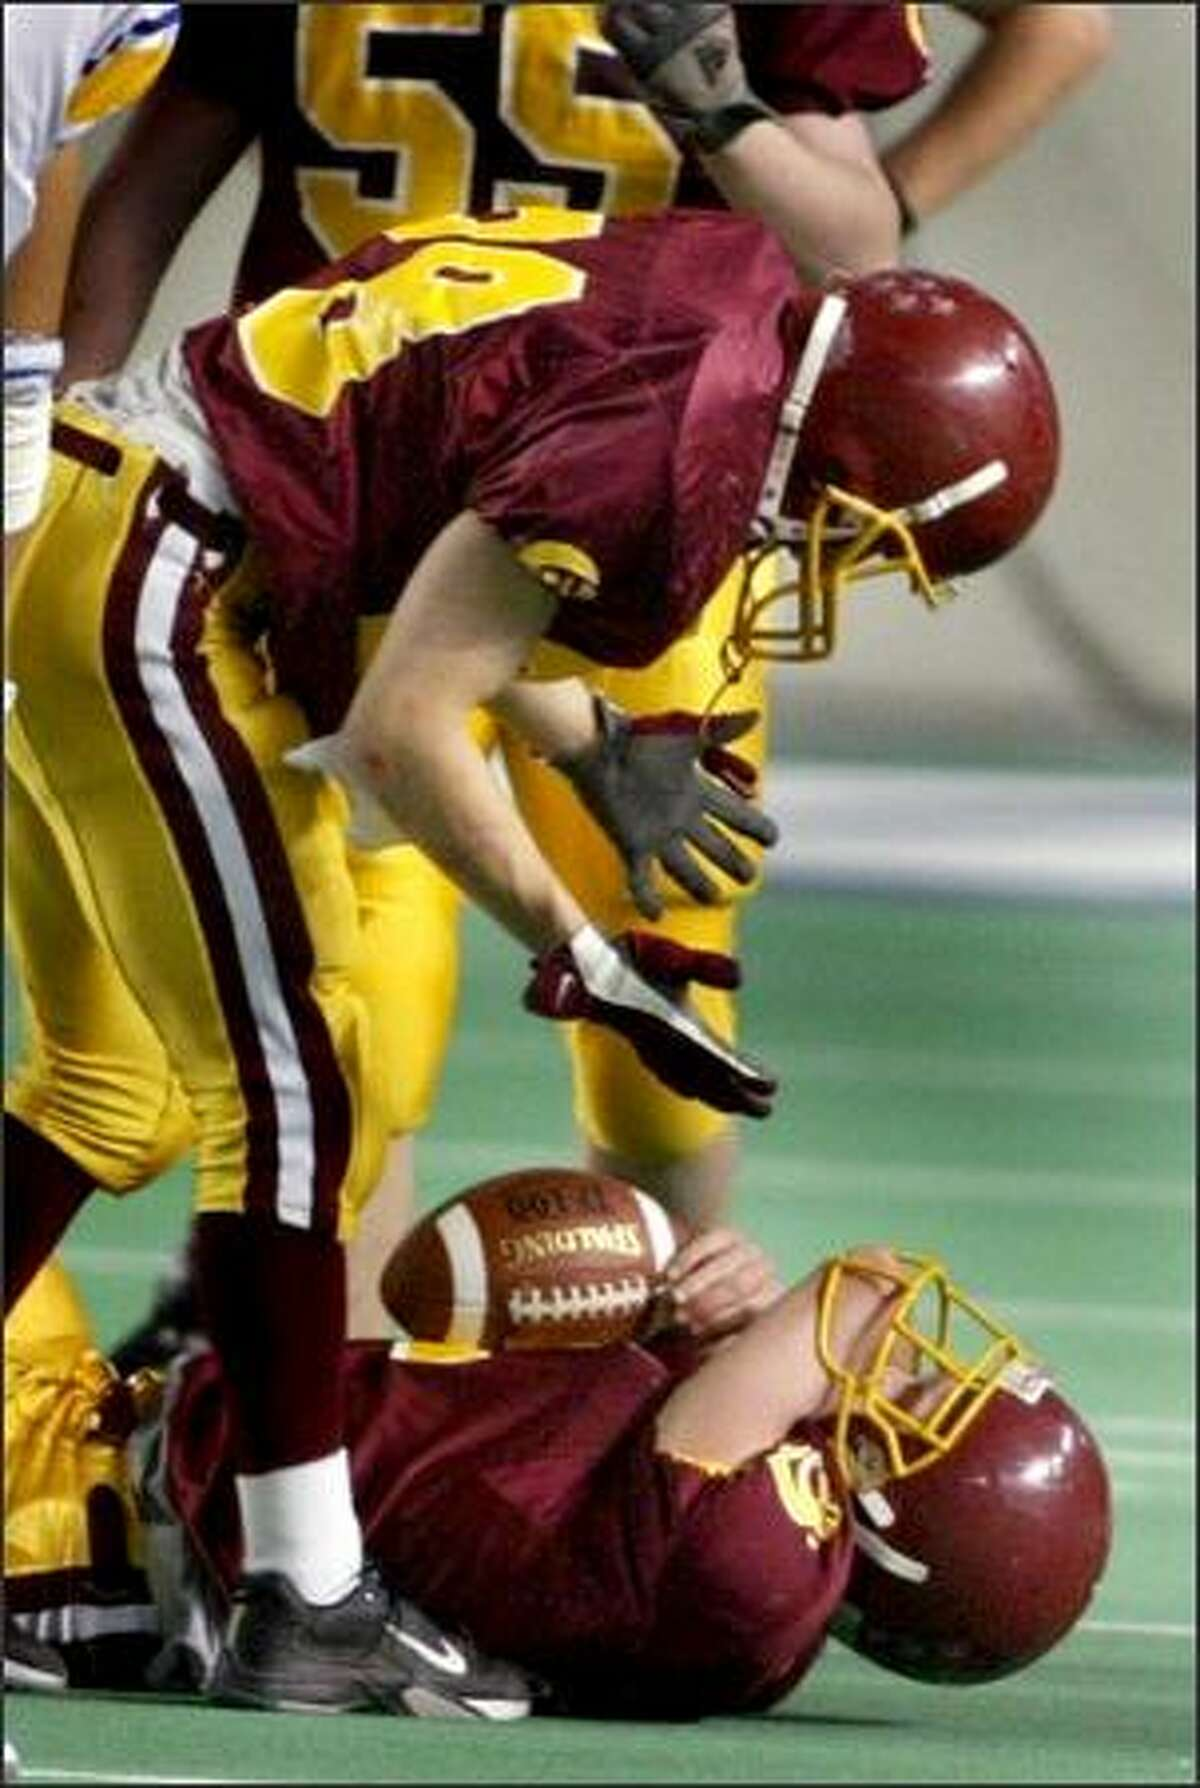 Michael Rittman looks at Joey Shanks, wondering how the O'Dea QB's elbow became stuck in his facemask.